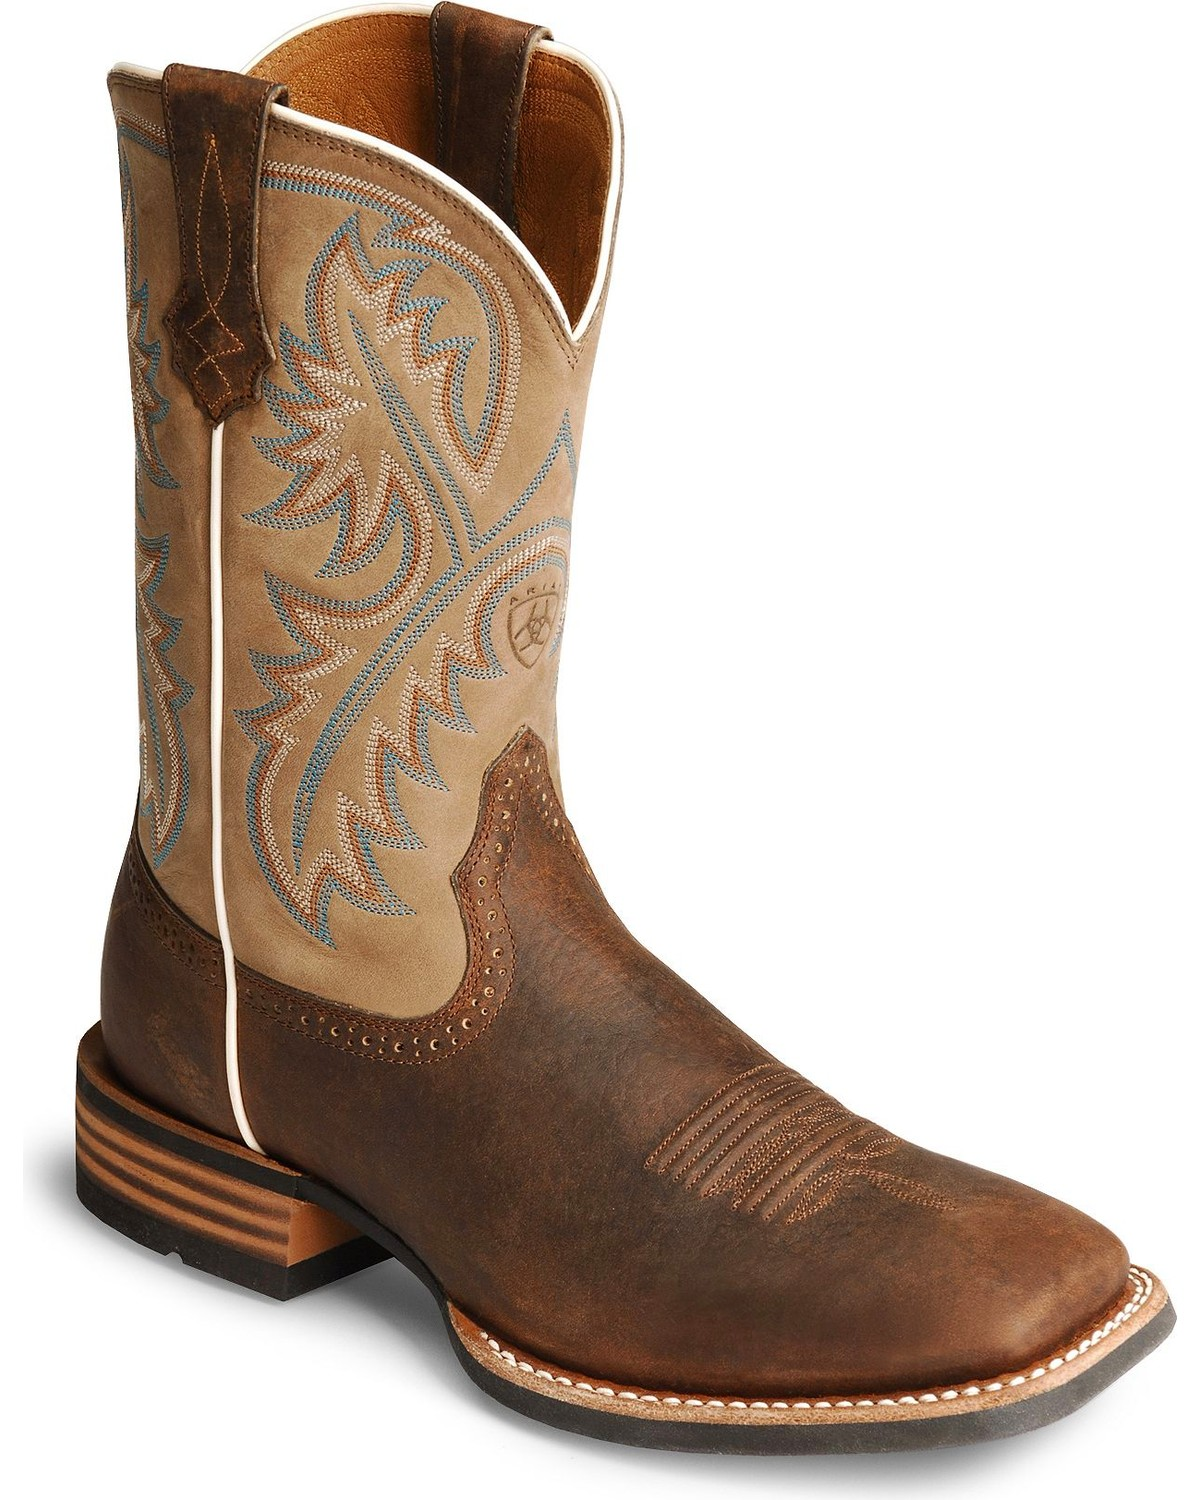 845847db1d5 Ariat Men's Quickdraw Western Boots